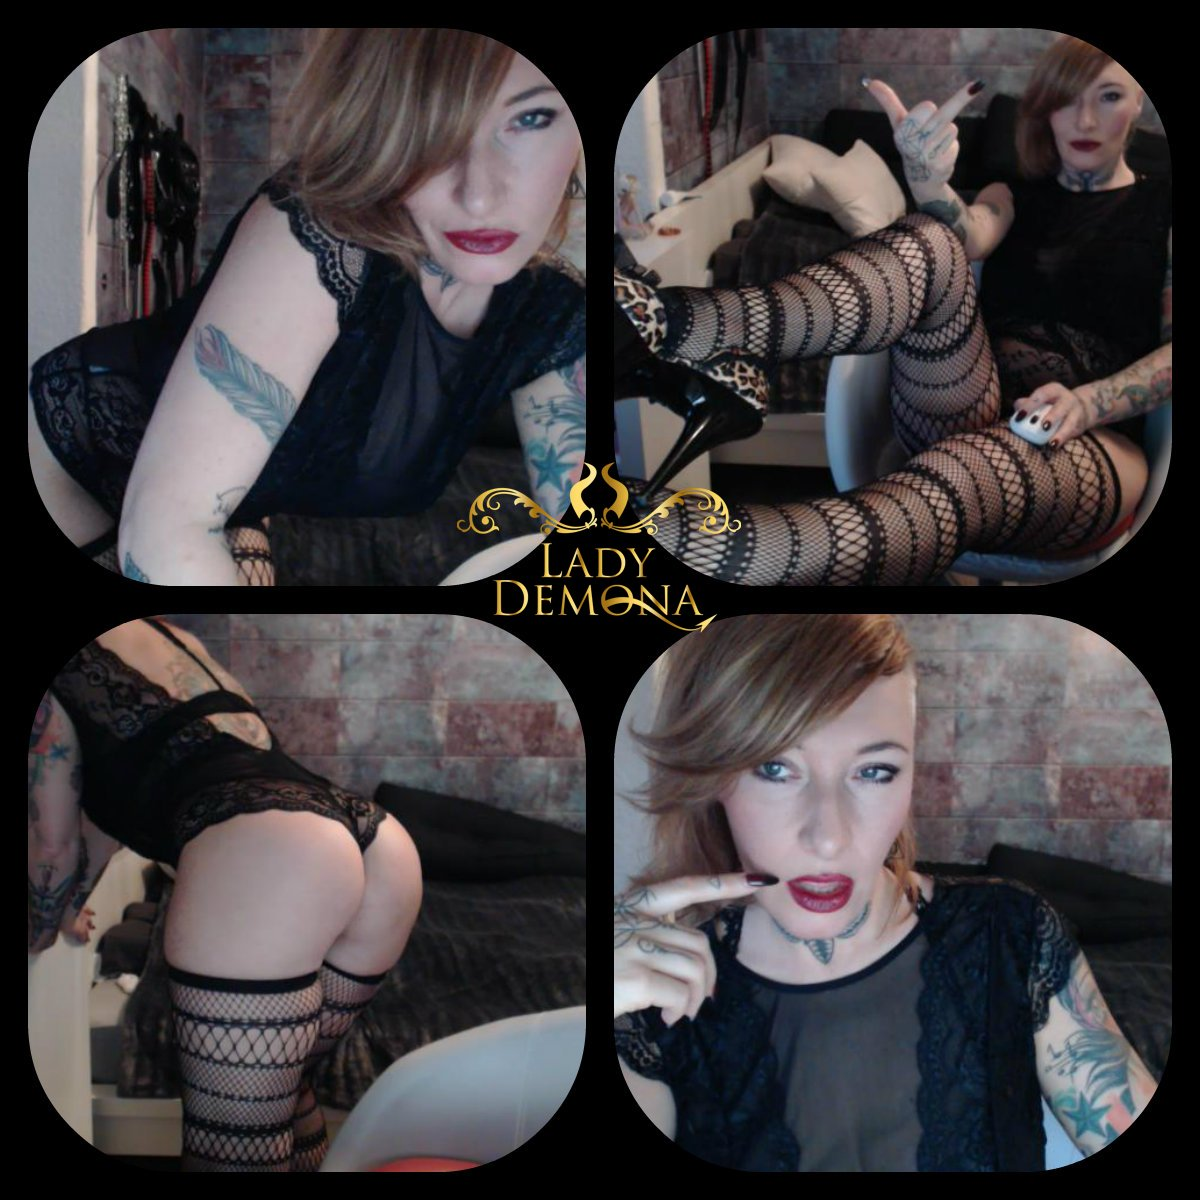 You need a #CustomVideo from me! Order your Clip NOW IWC VVk1lO6sHb OeNt